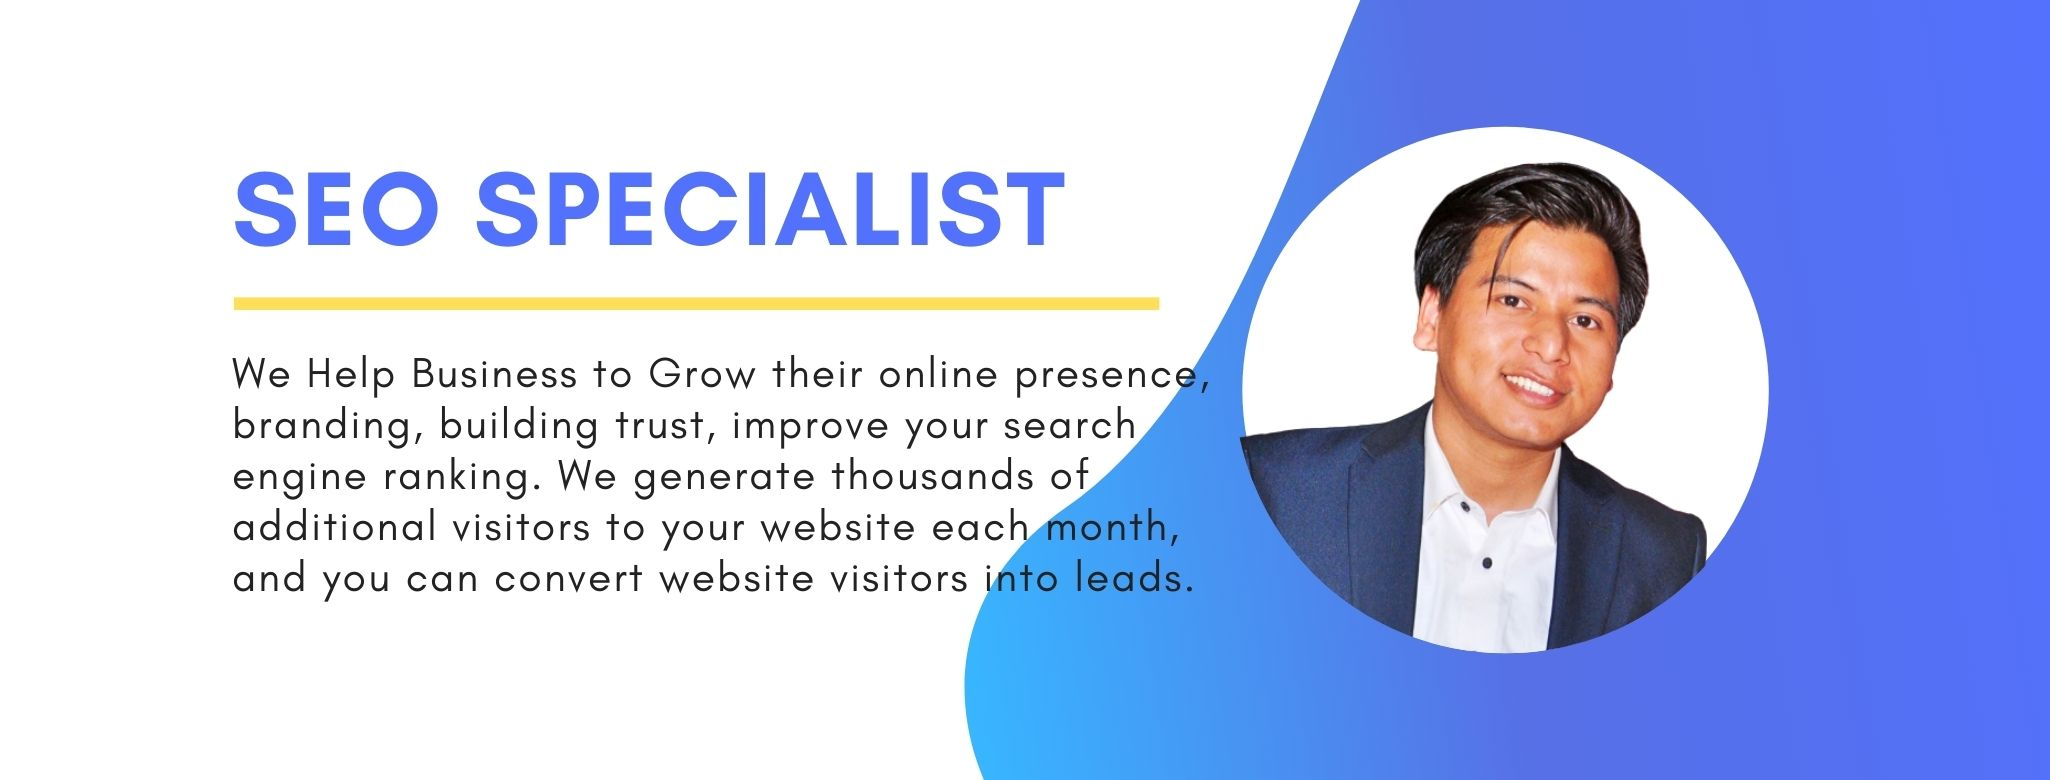 Best SEO Specialist In India